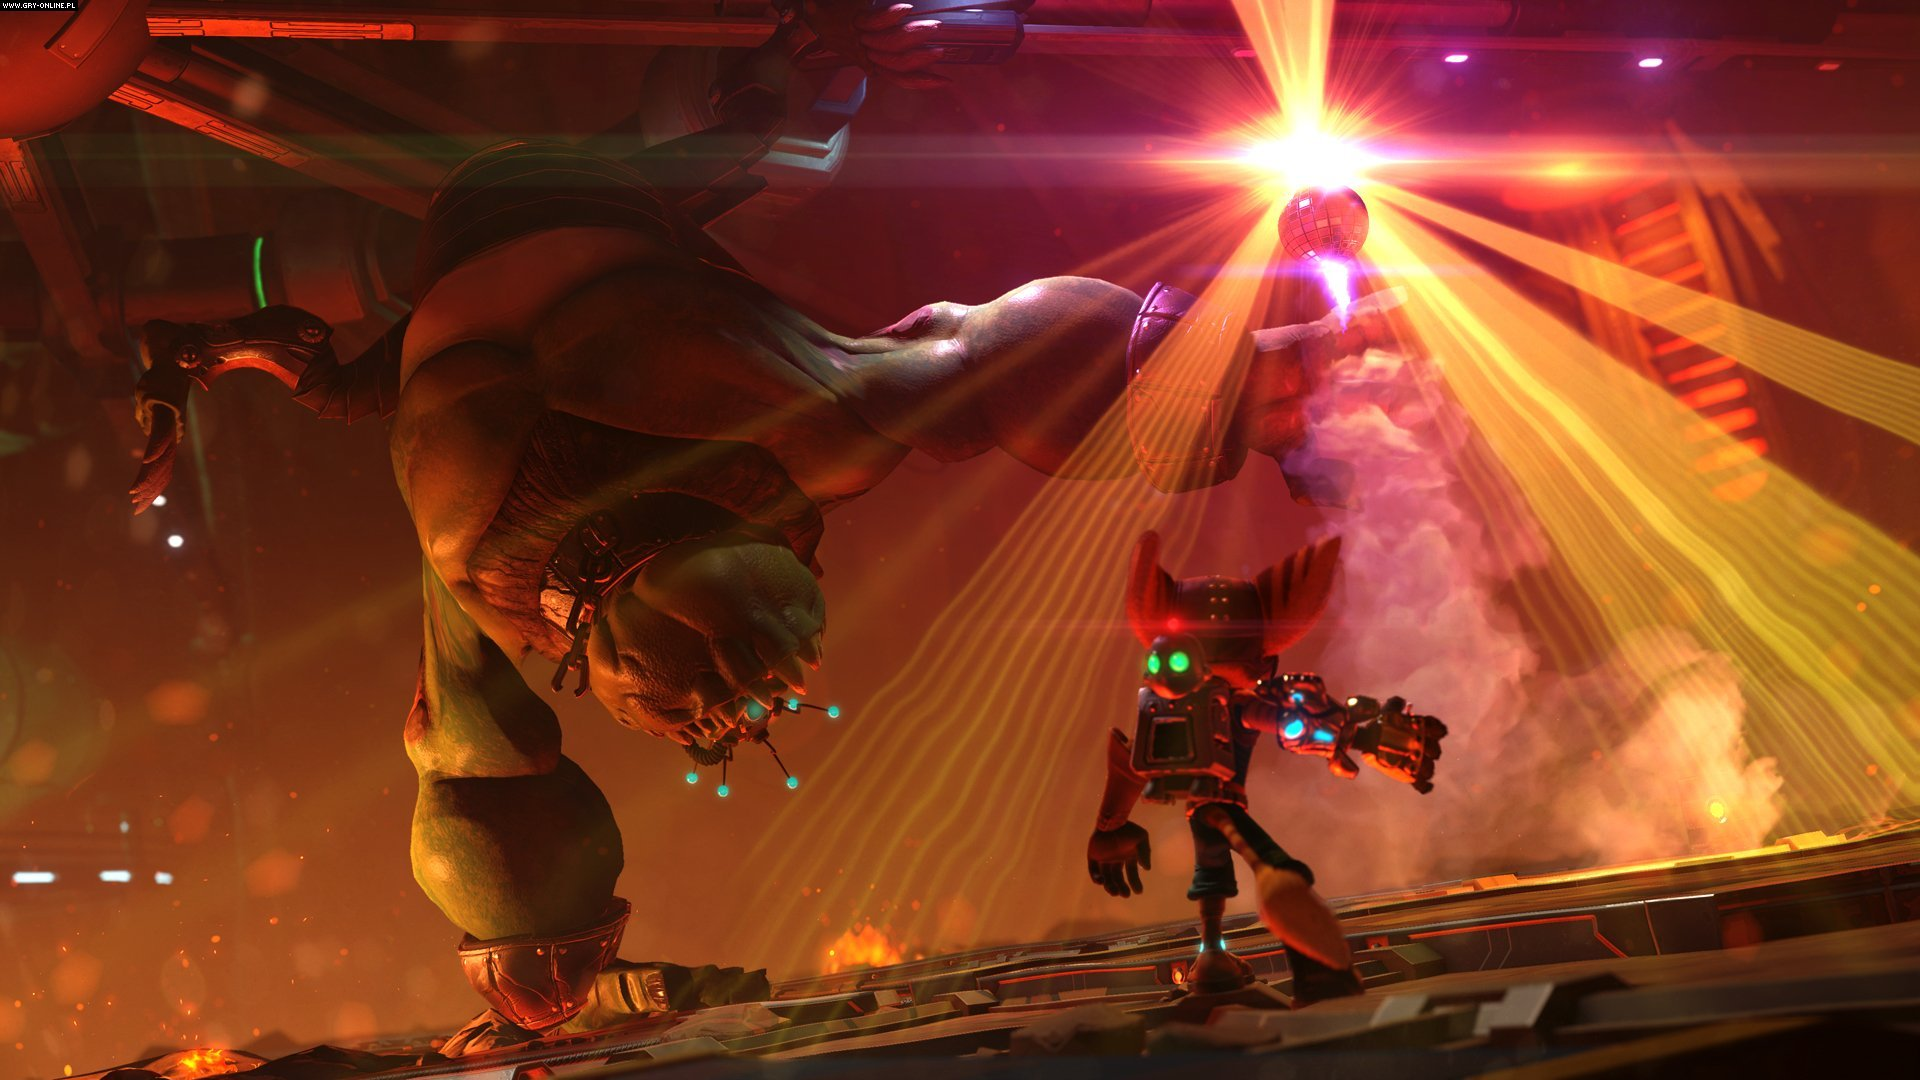 Ratchet & Clank PS4 Gry Screen 13/15, Insomniac Games, Sony Interactive Entertainment